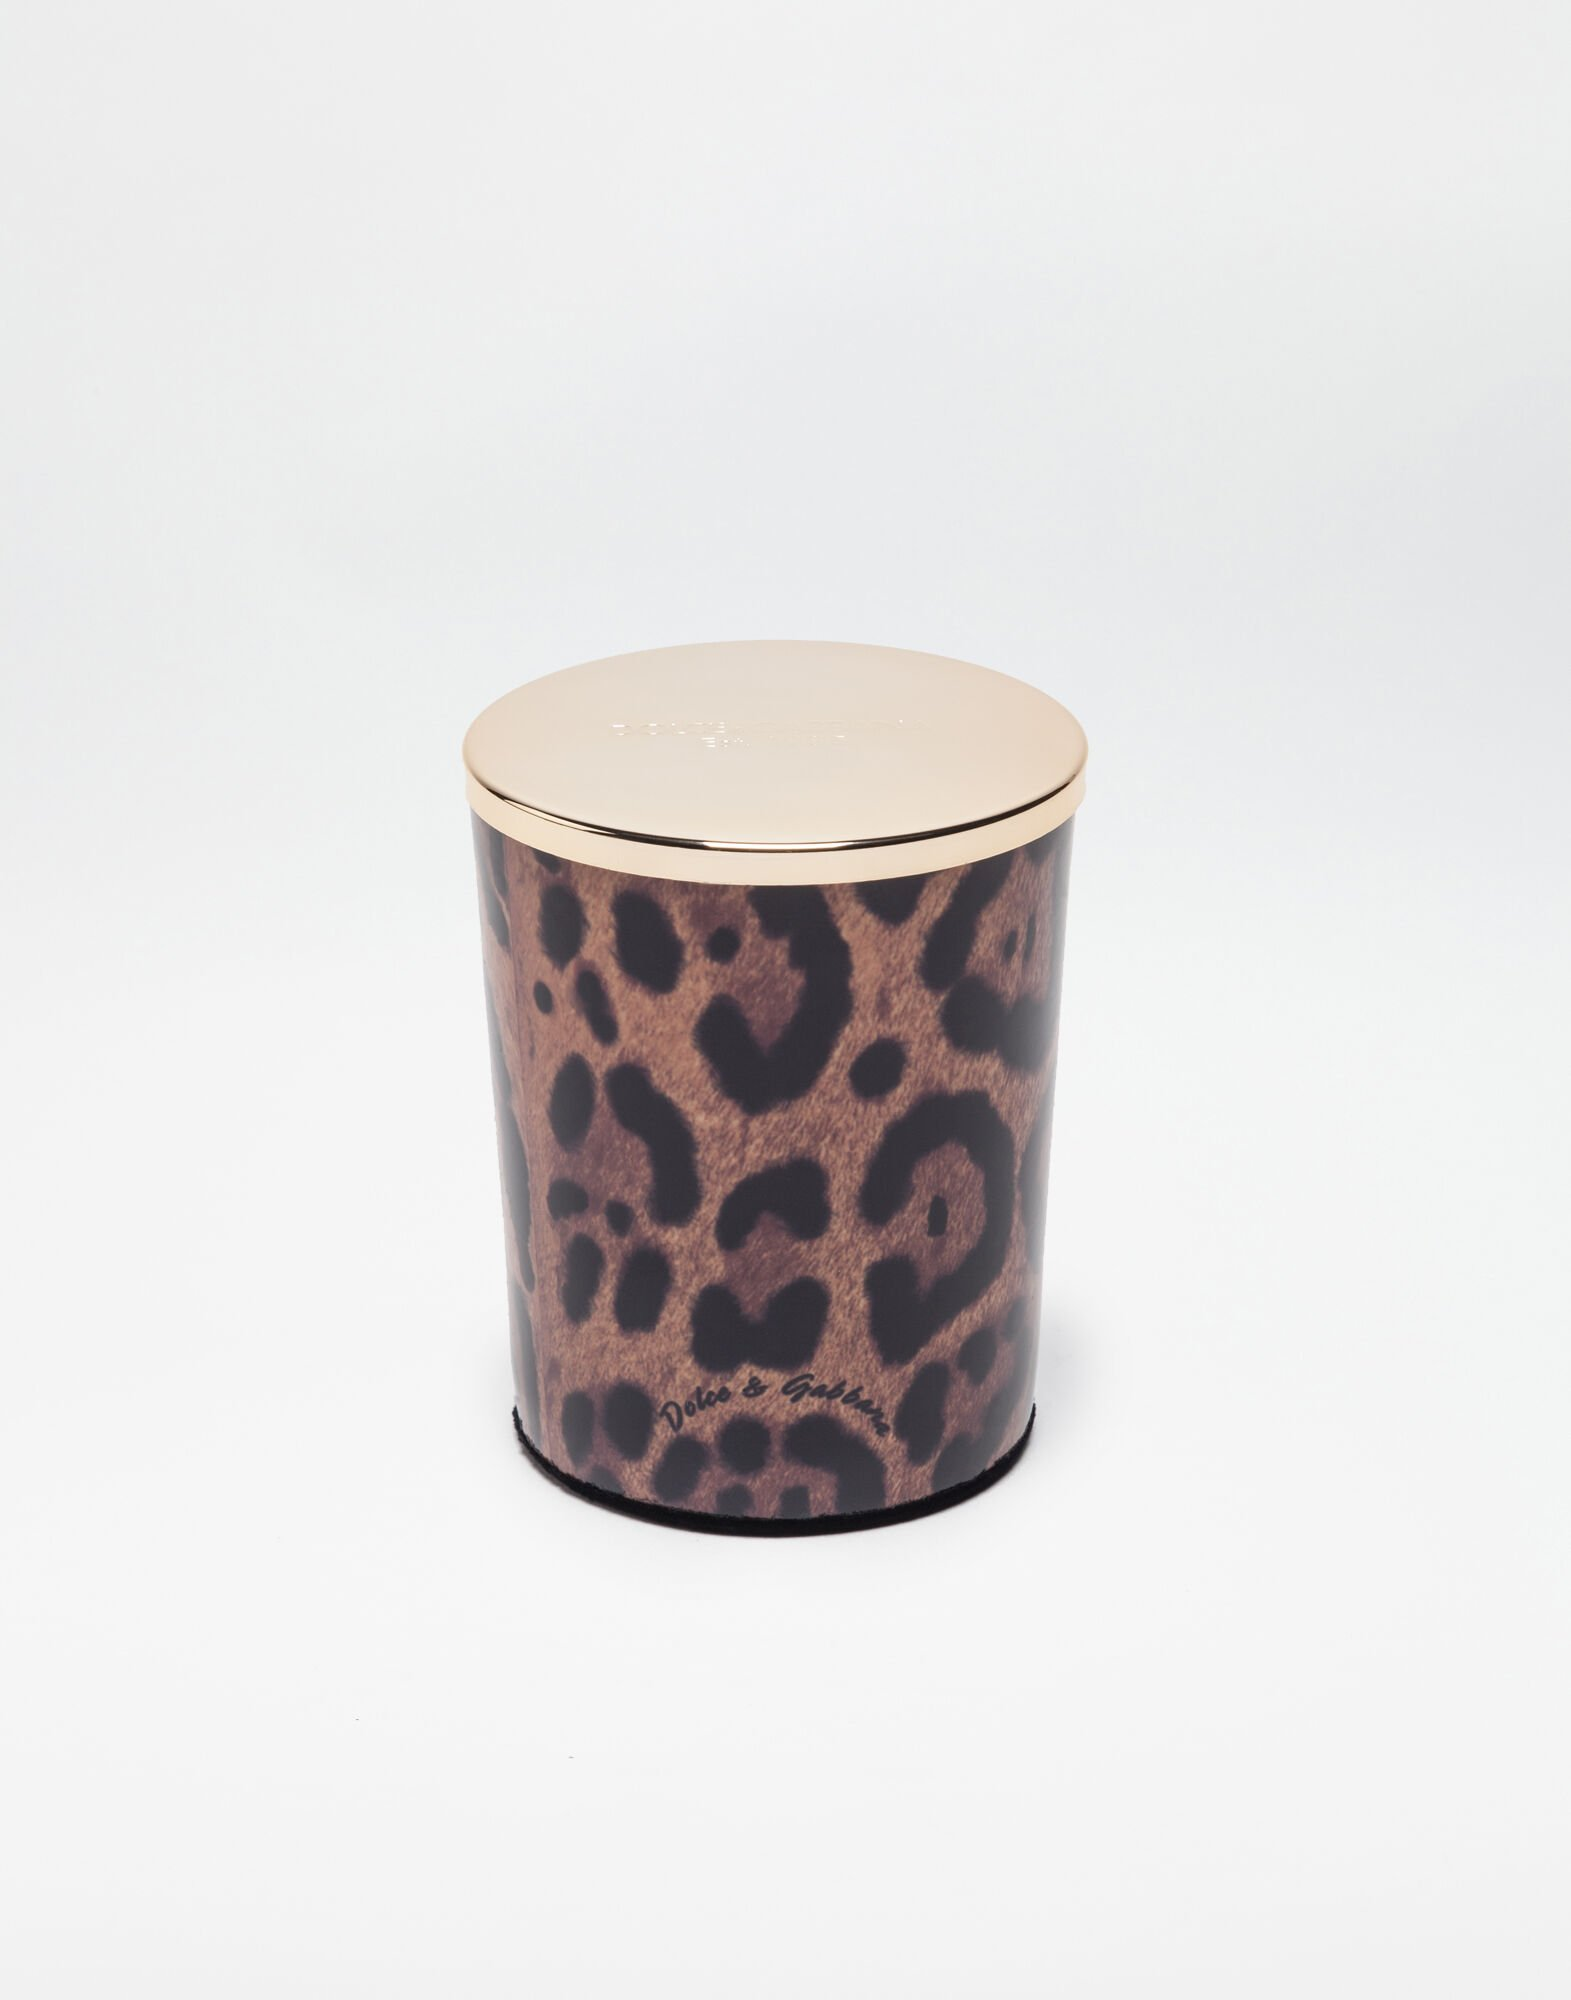 SCENTED WAX CANDLE WITH PRINTED GLASS